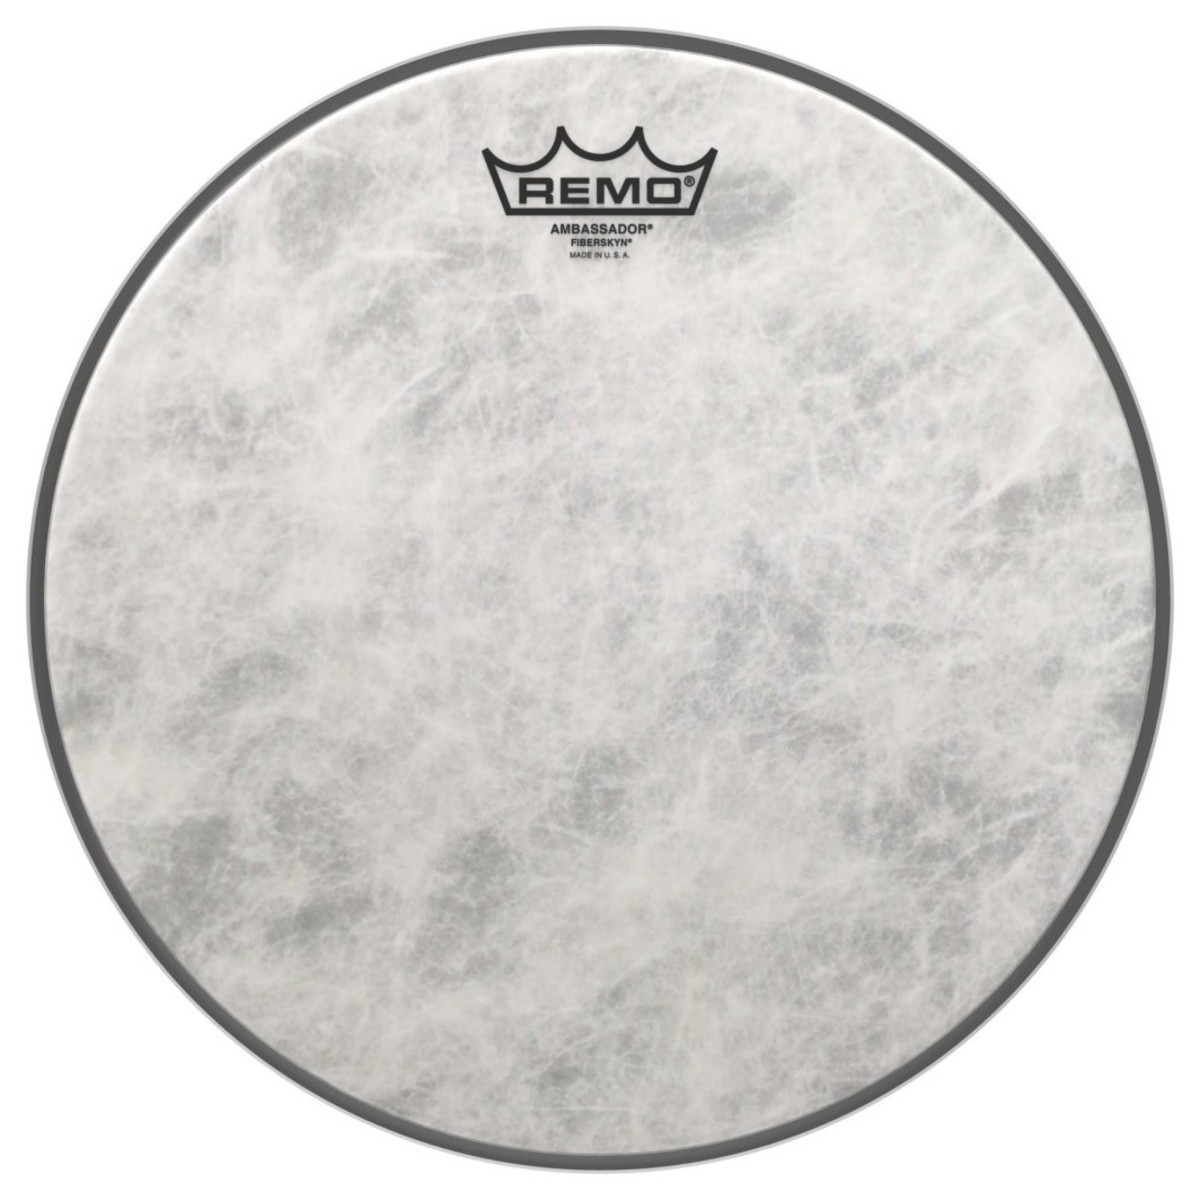 Click to view product details and reviews for Remo Ambassador Fiberskyn 3 13 Drum Head.